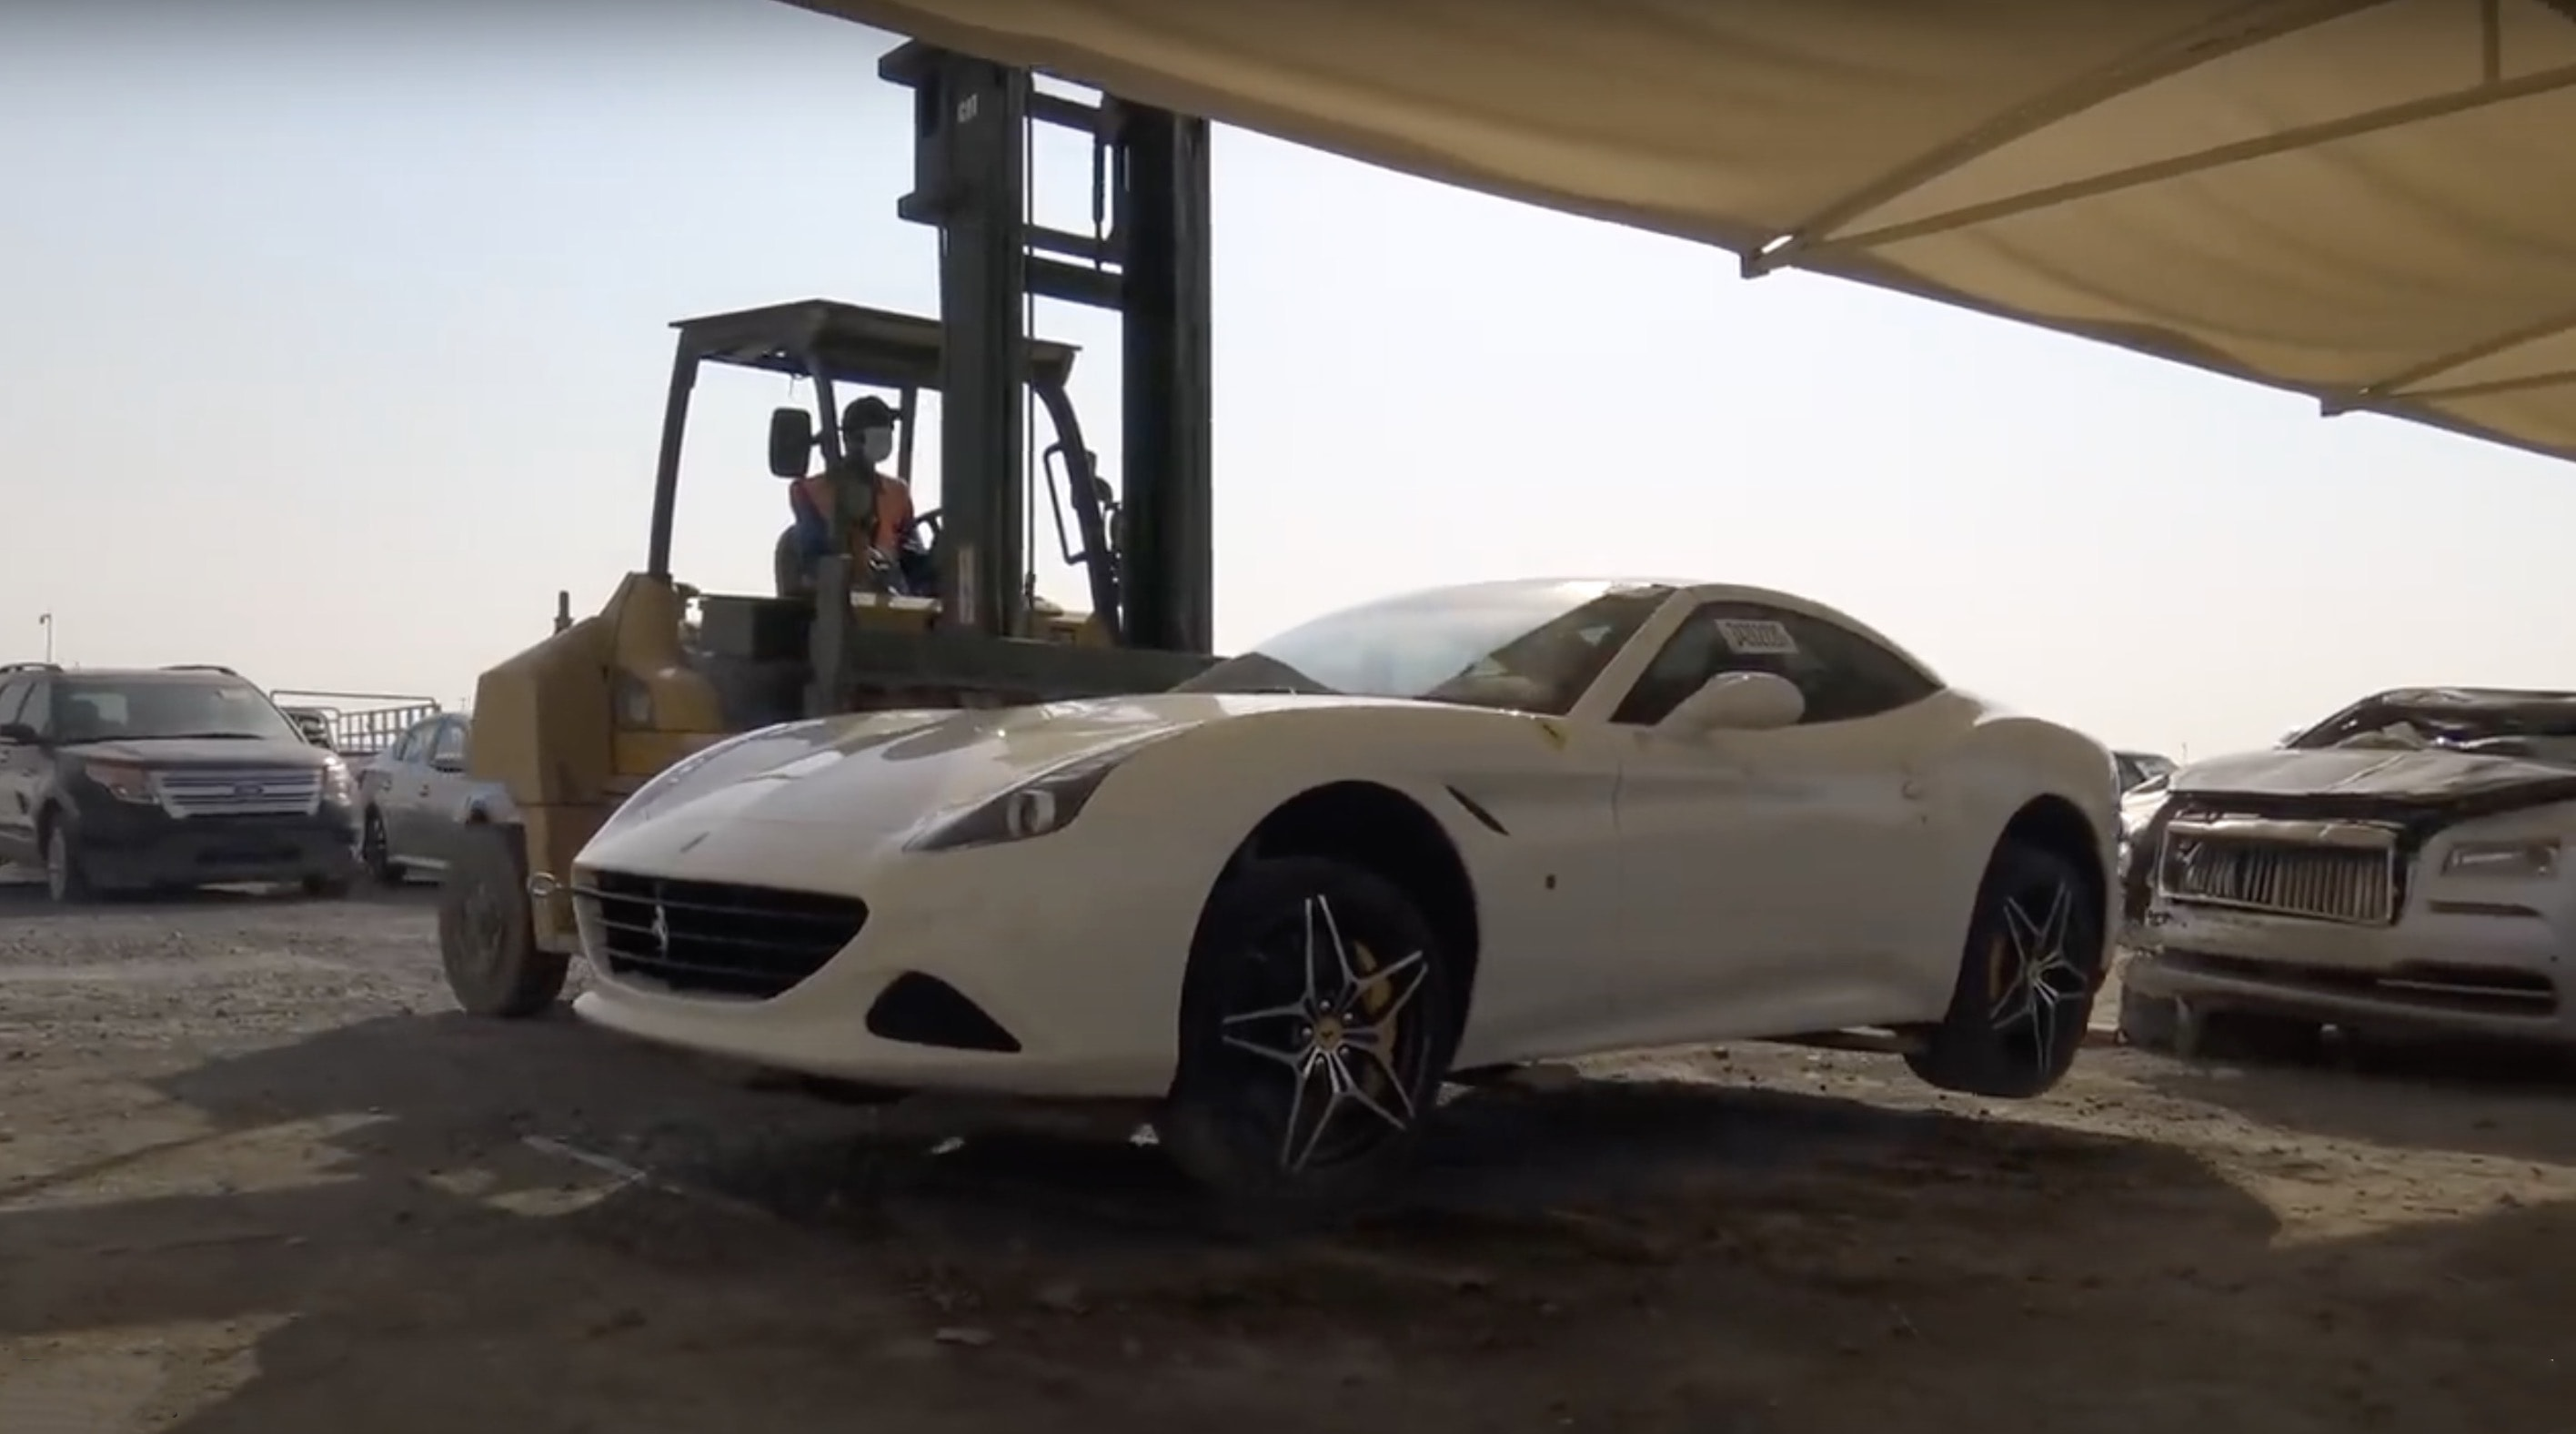 Million Dollar Scrapyard Final Resting Place For Supercars In Dubai Caradvice